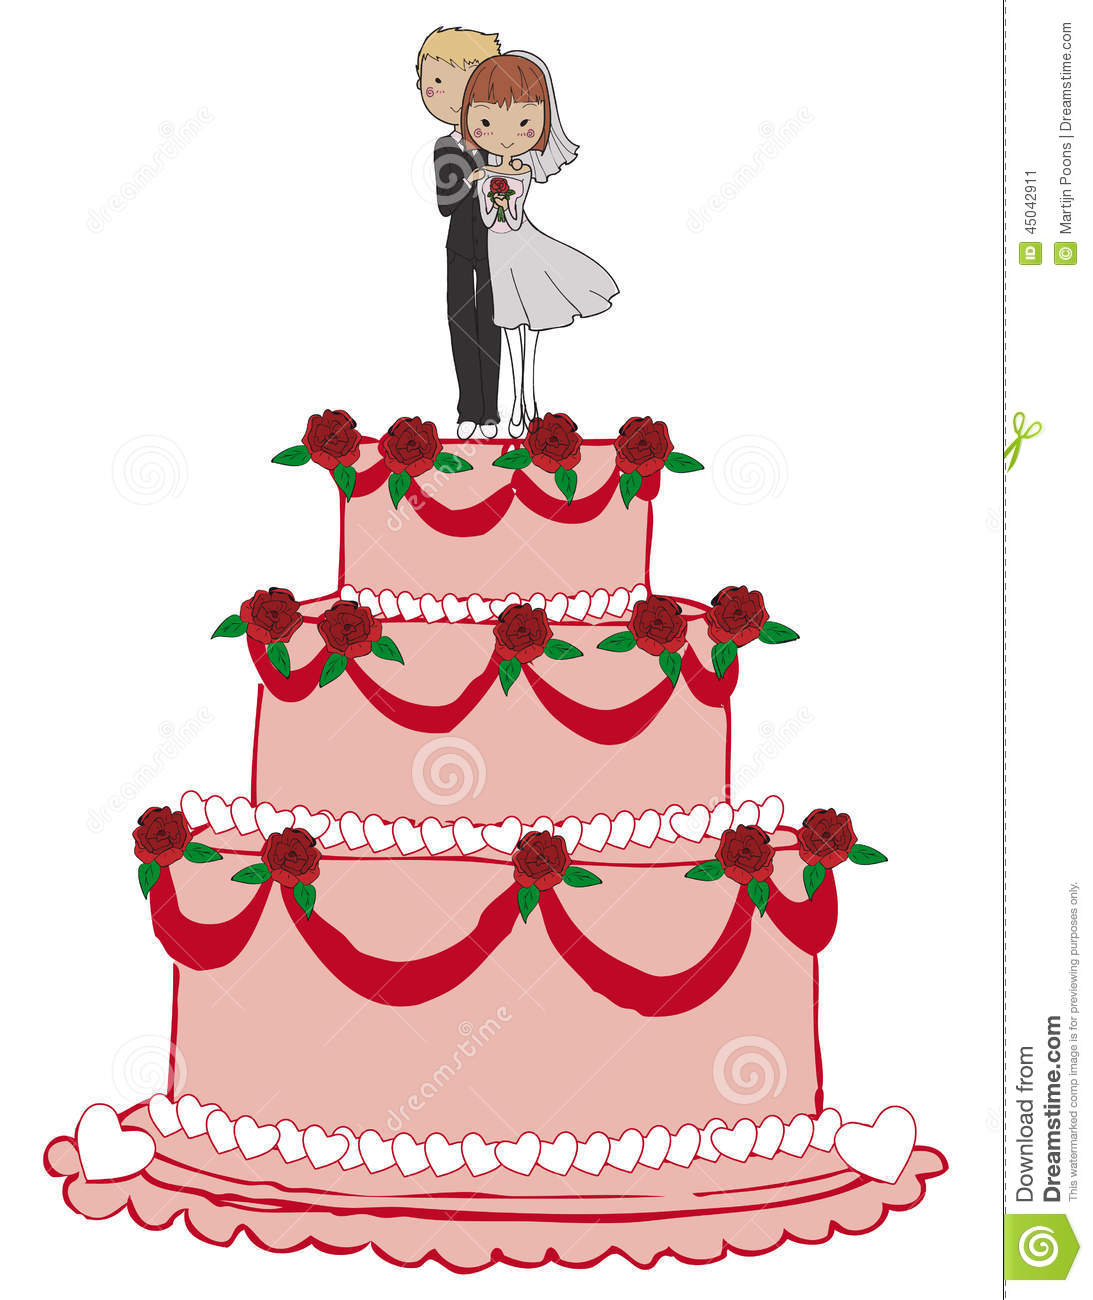 cartoon picture of a wedding cake wedding cake stock vector illustration of marriage 12418